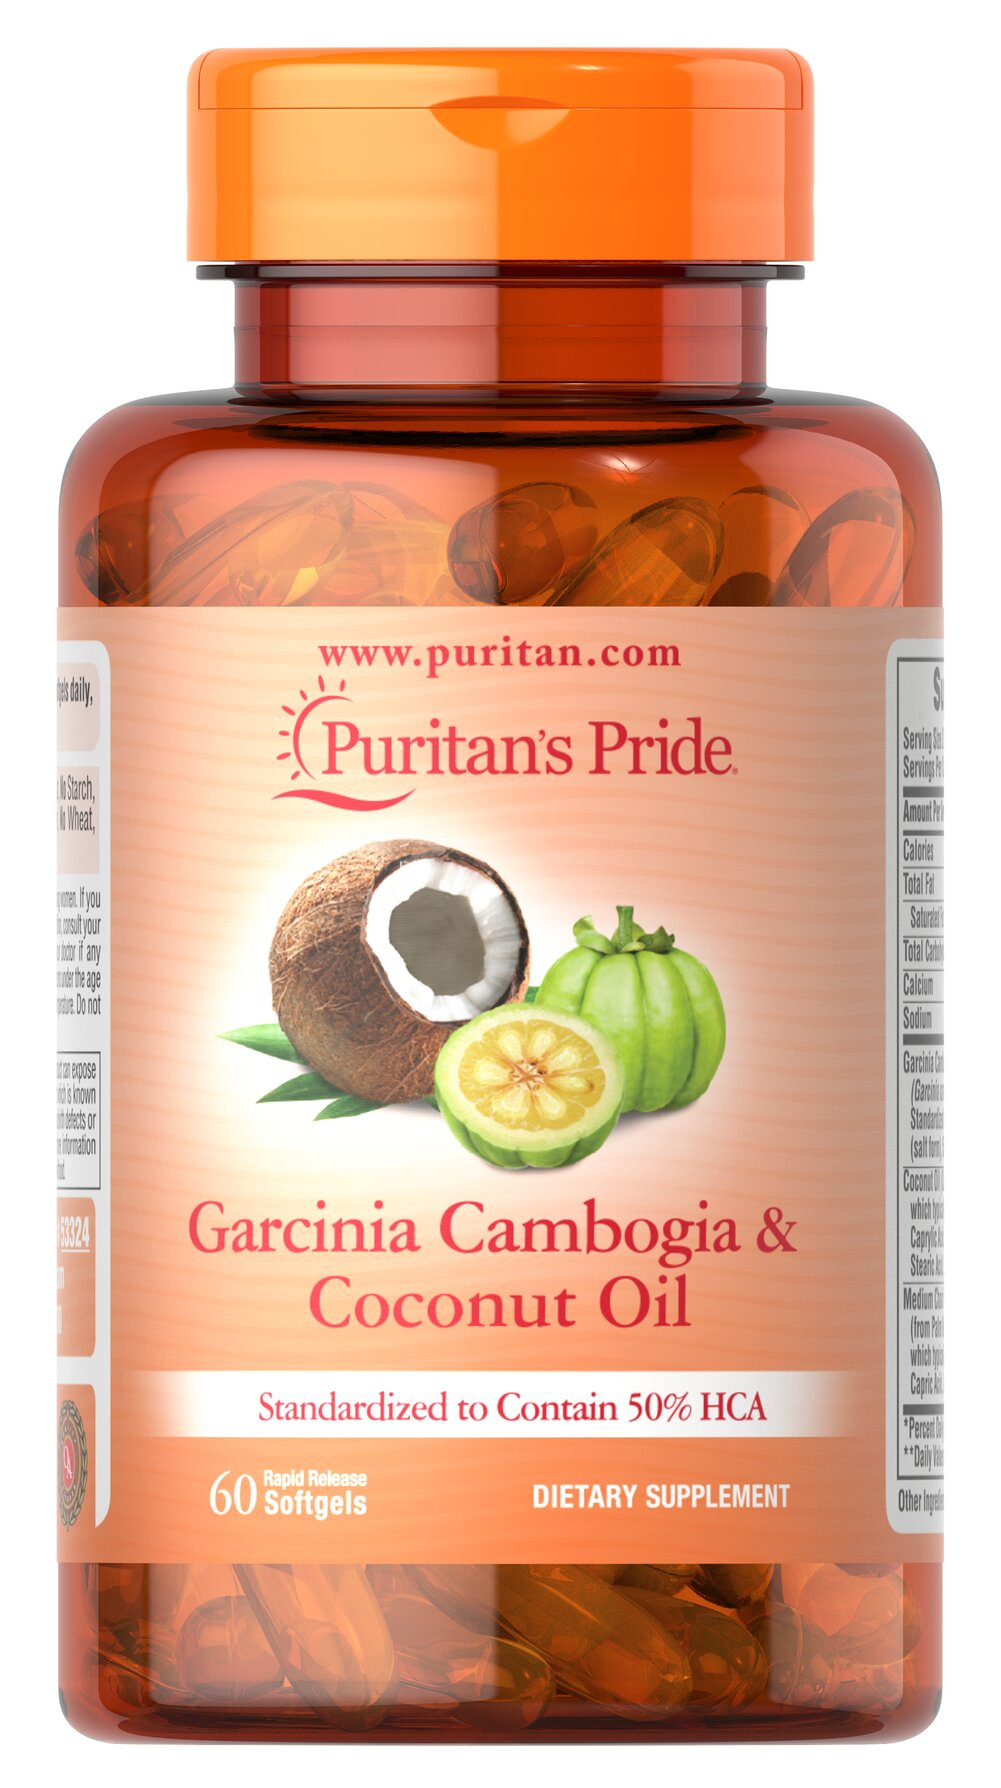 Garcinia Cambogia 500 mg plus Coconut Oil 500mg  60 Softgels 500 mg $19.99